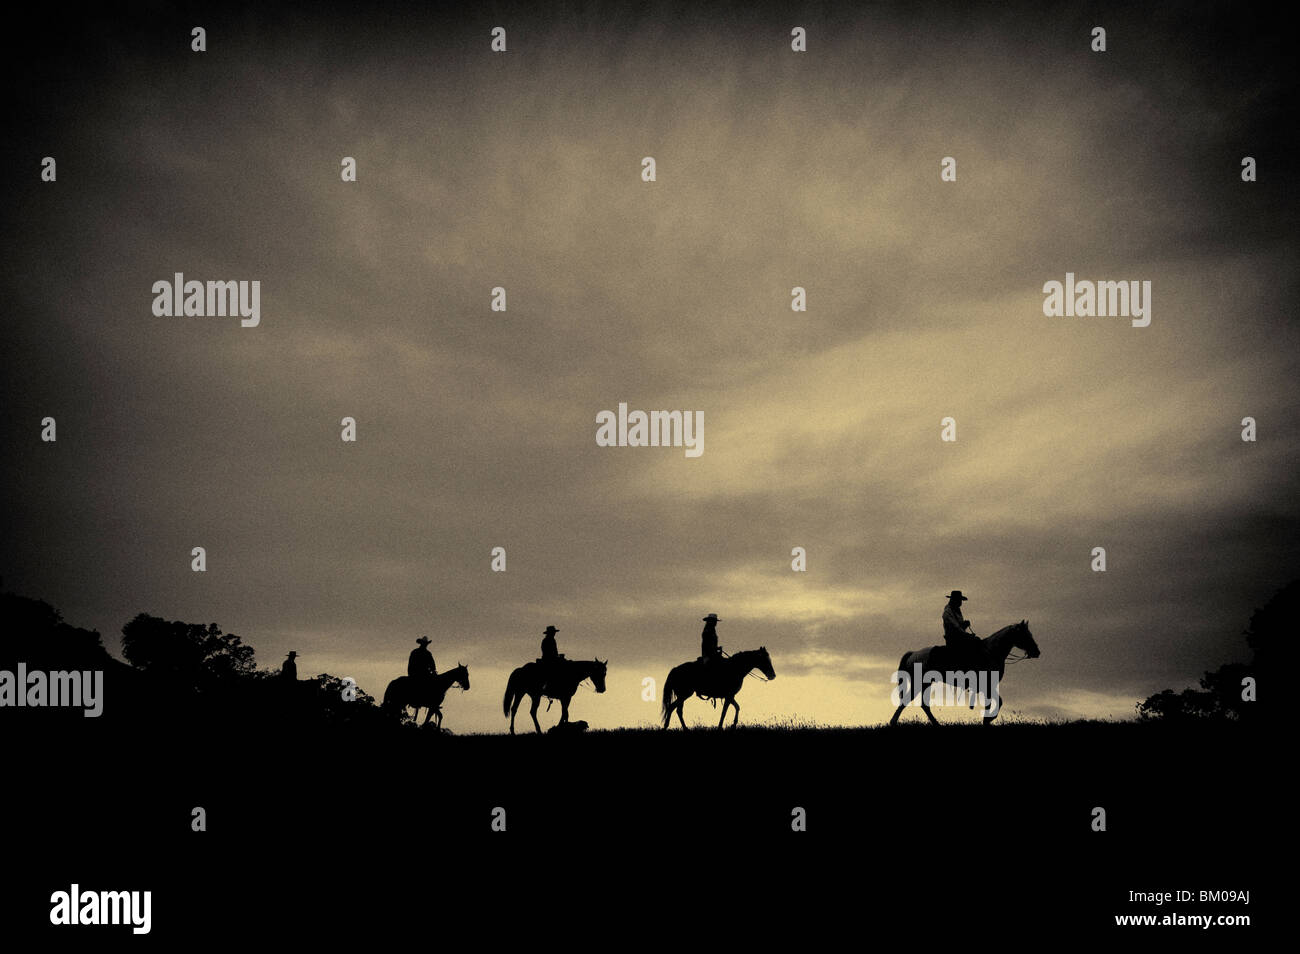 Horses and cowboys on their way home at sunset - Stock Image